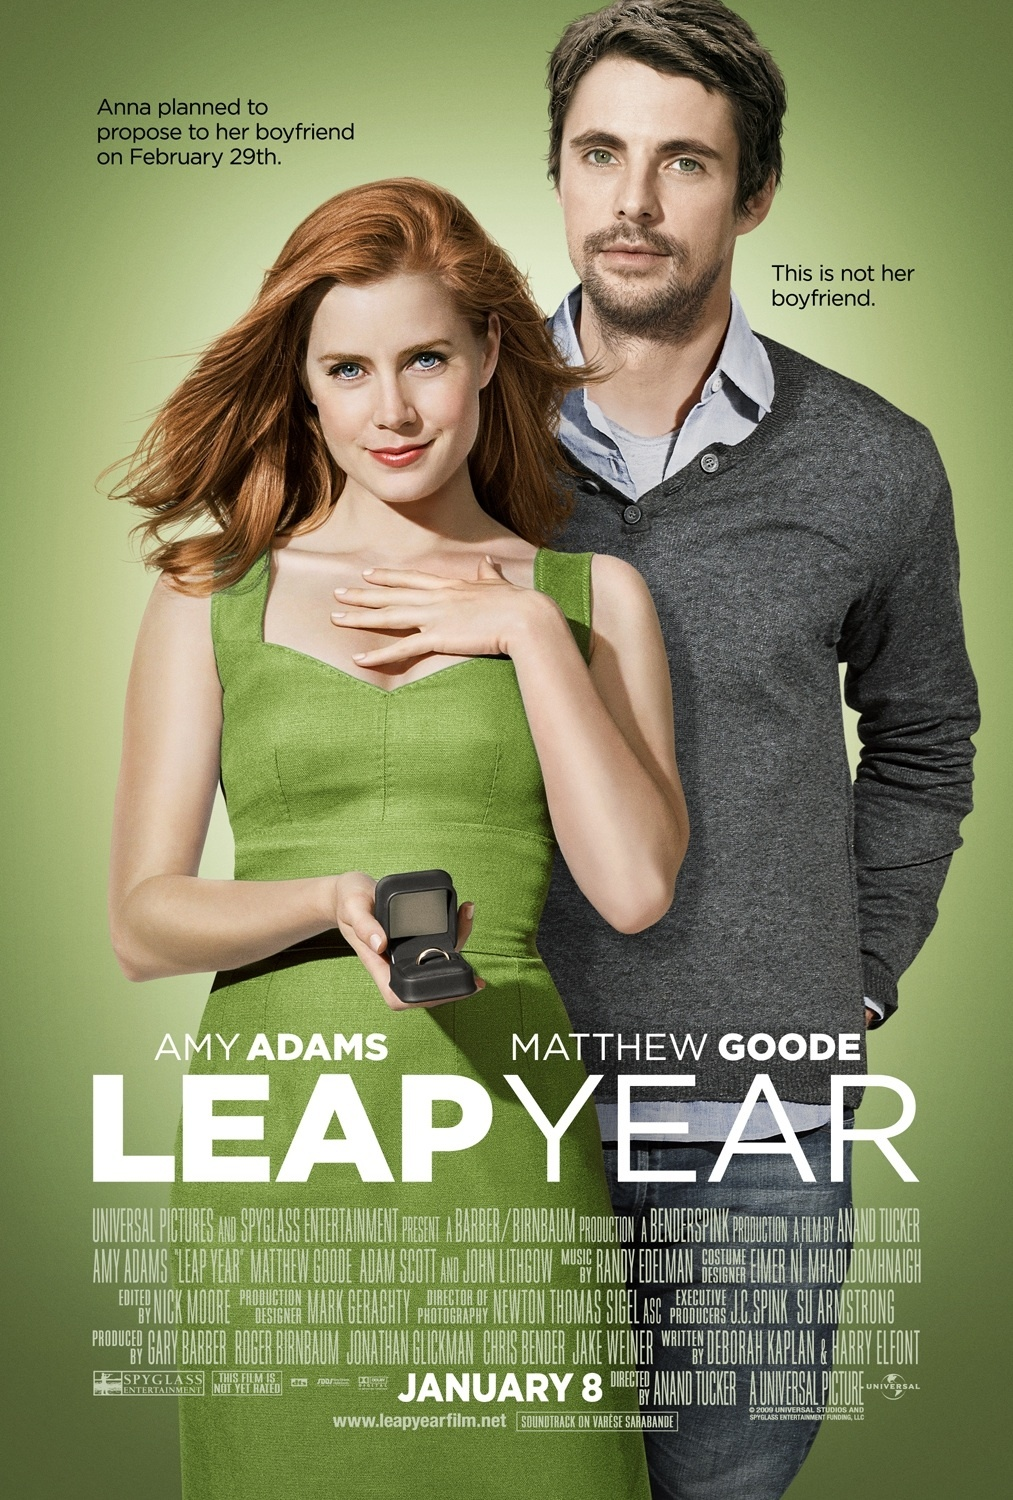 Amy Adams looks beautiful in this poster from the movie Leap Year.